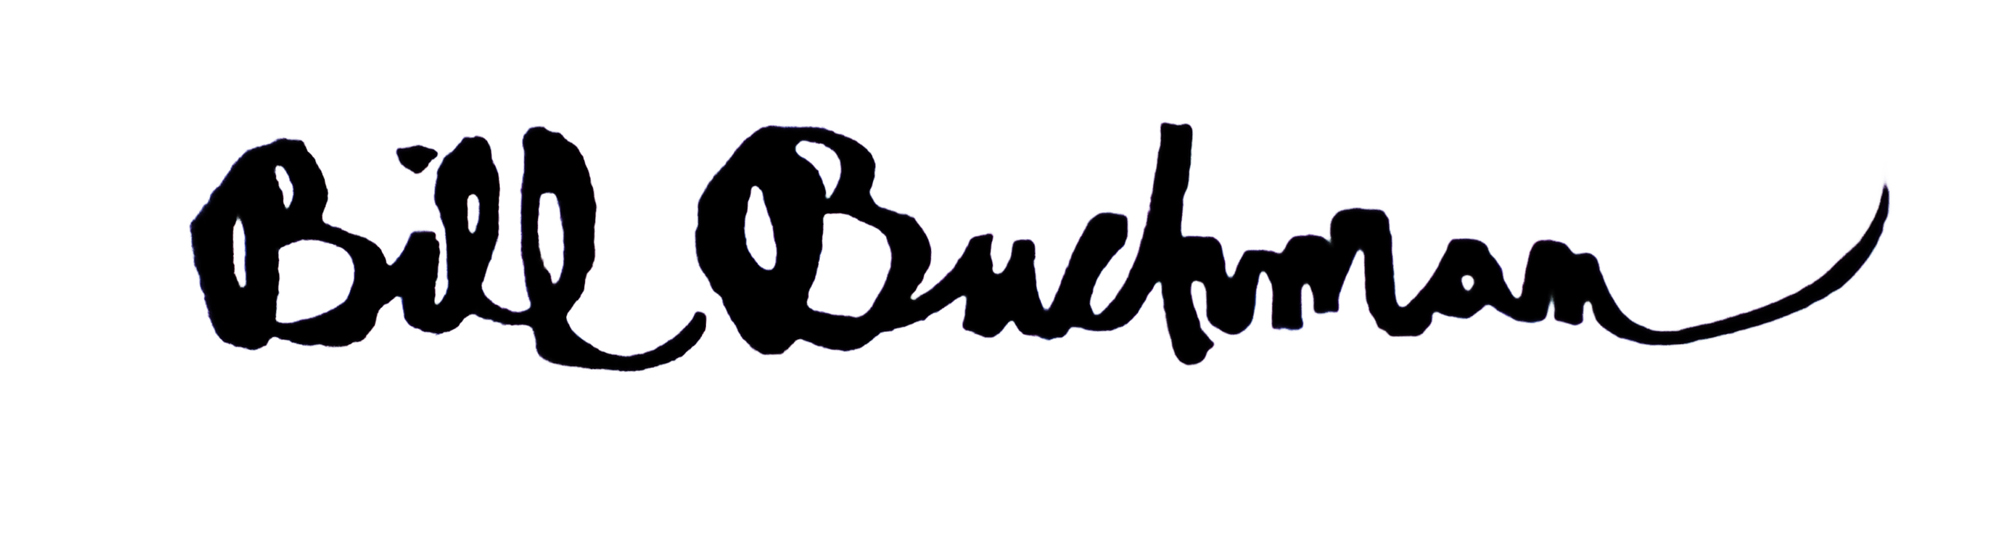 Bill Buchman's Signature